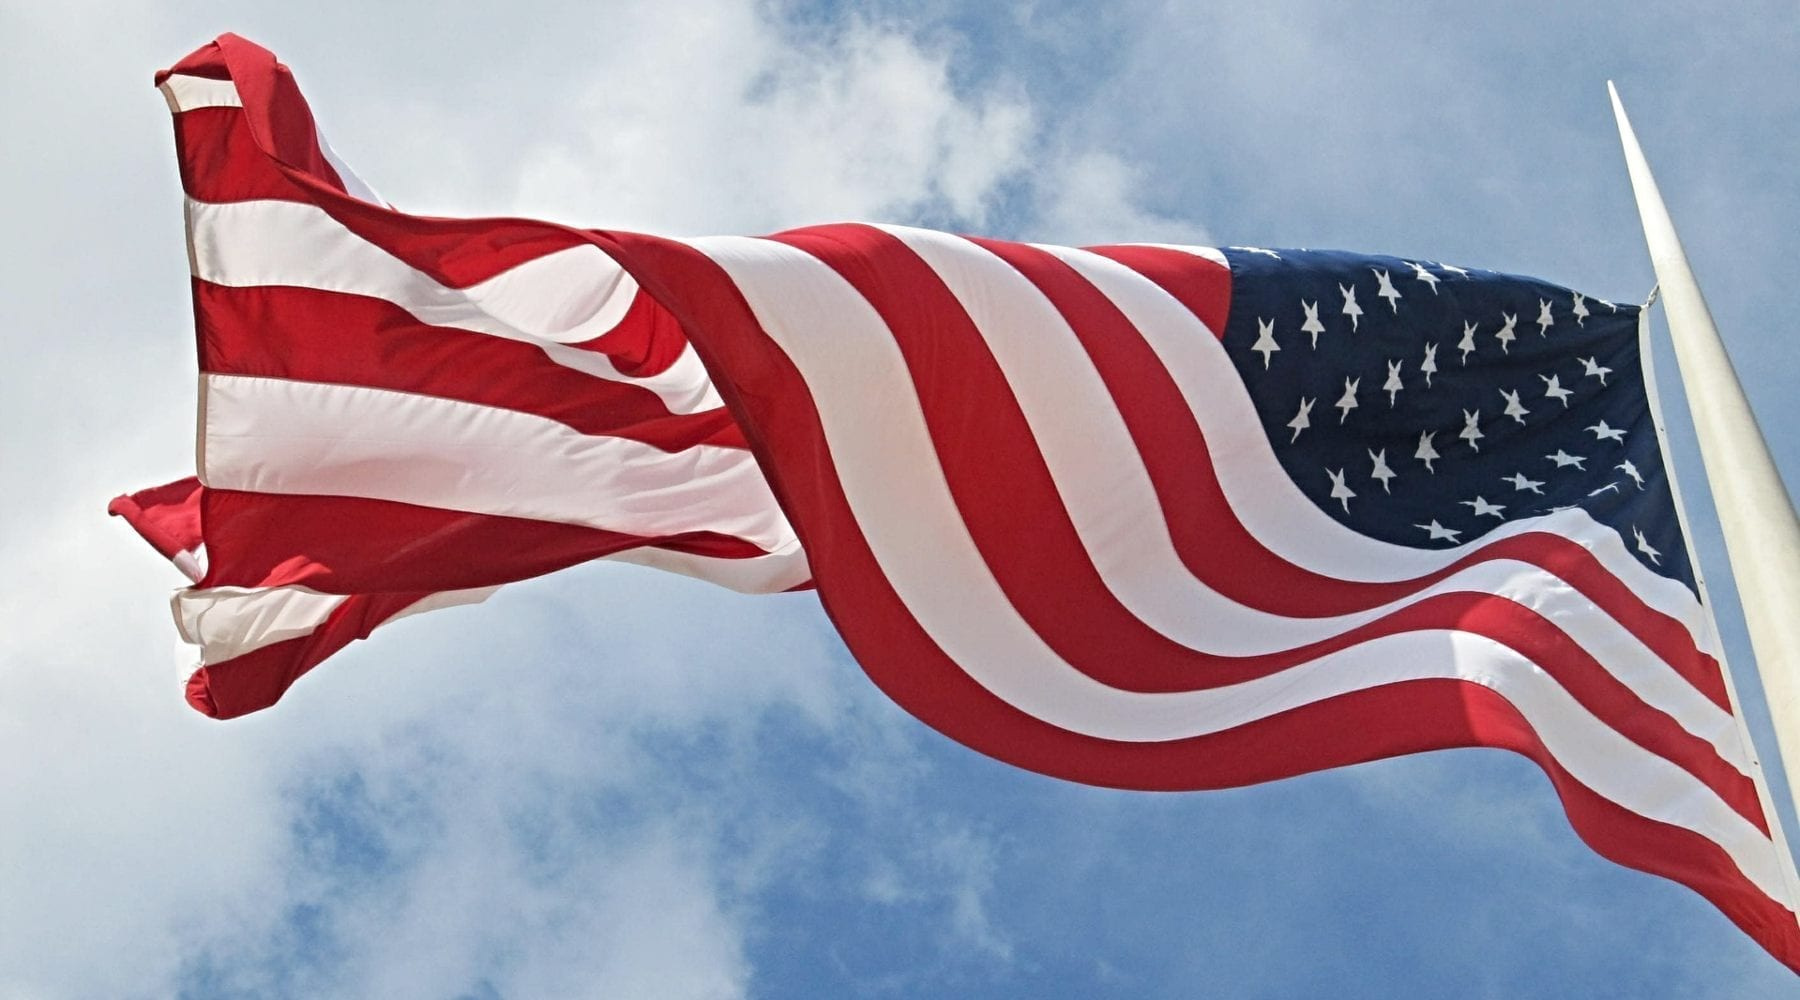 10 Reasons Why U.S. Flag Should Not Be in Your Sanctuary